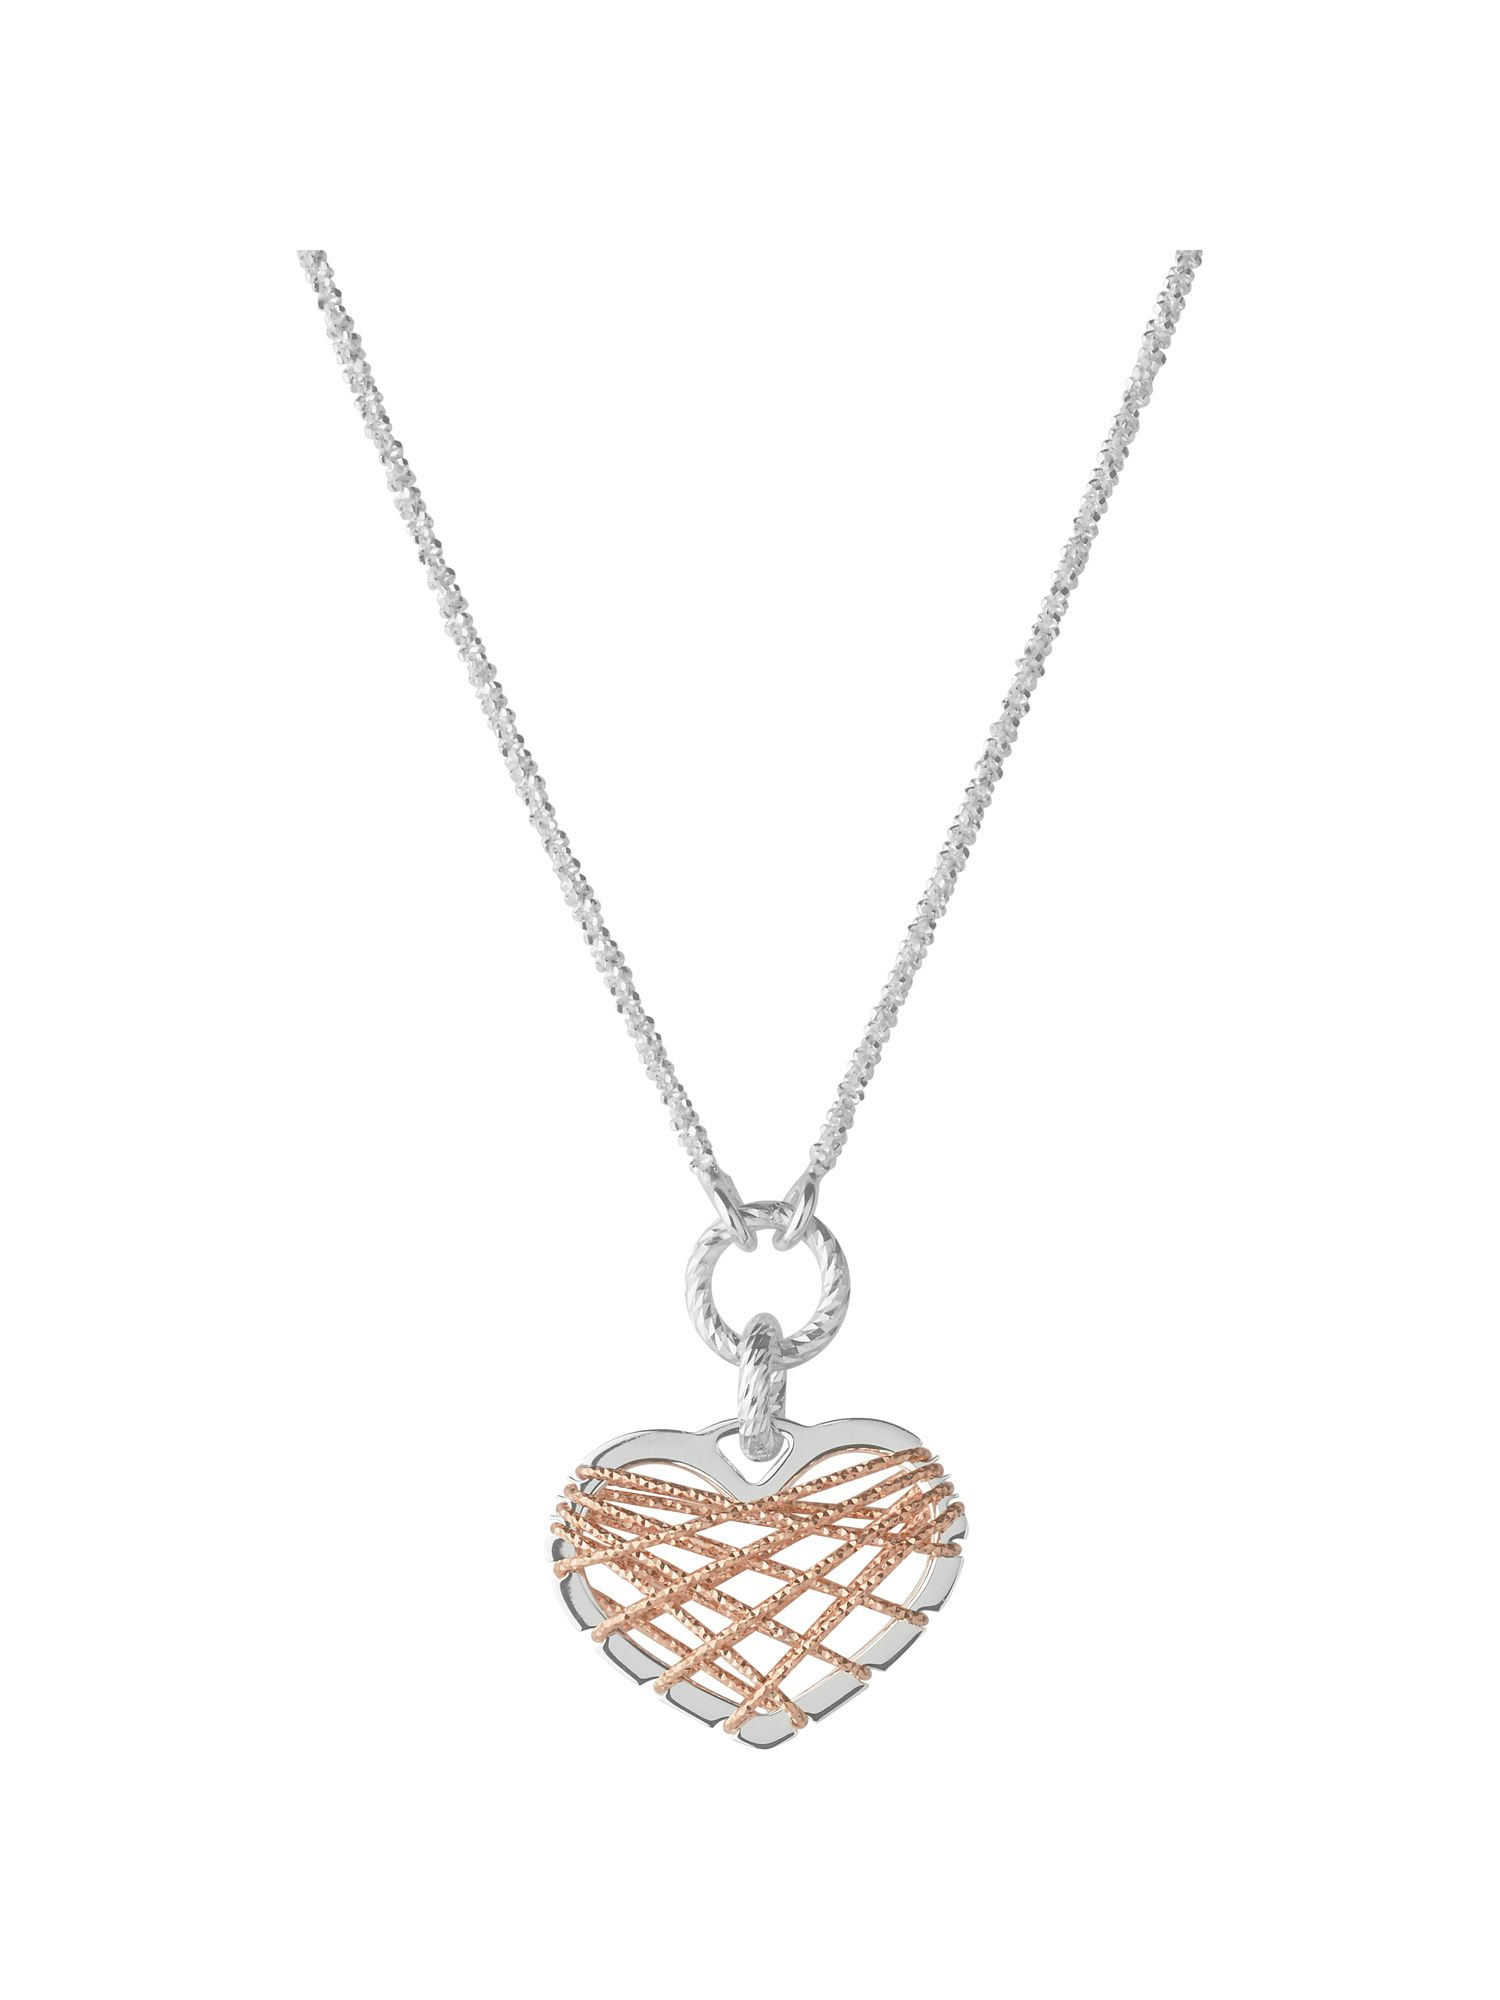 Dream catcher heart rose gold pendant